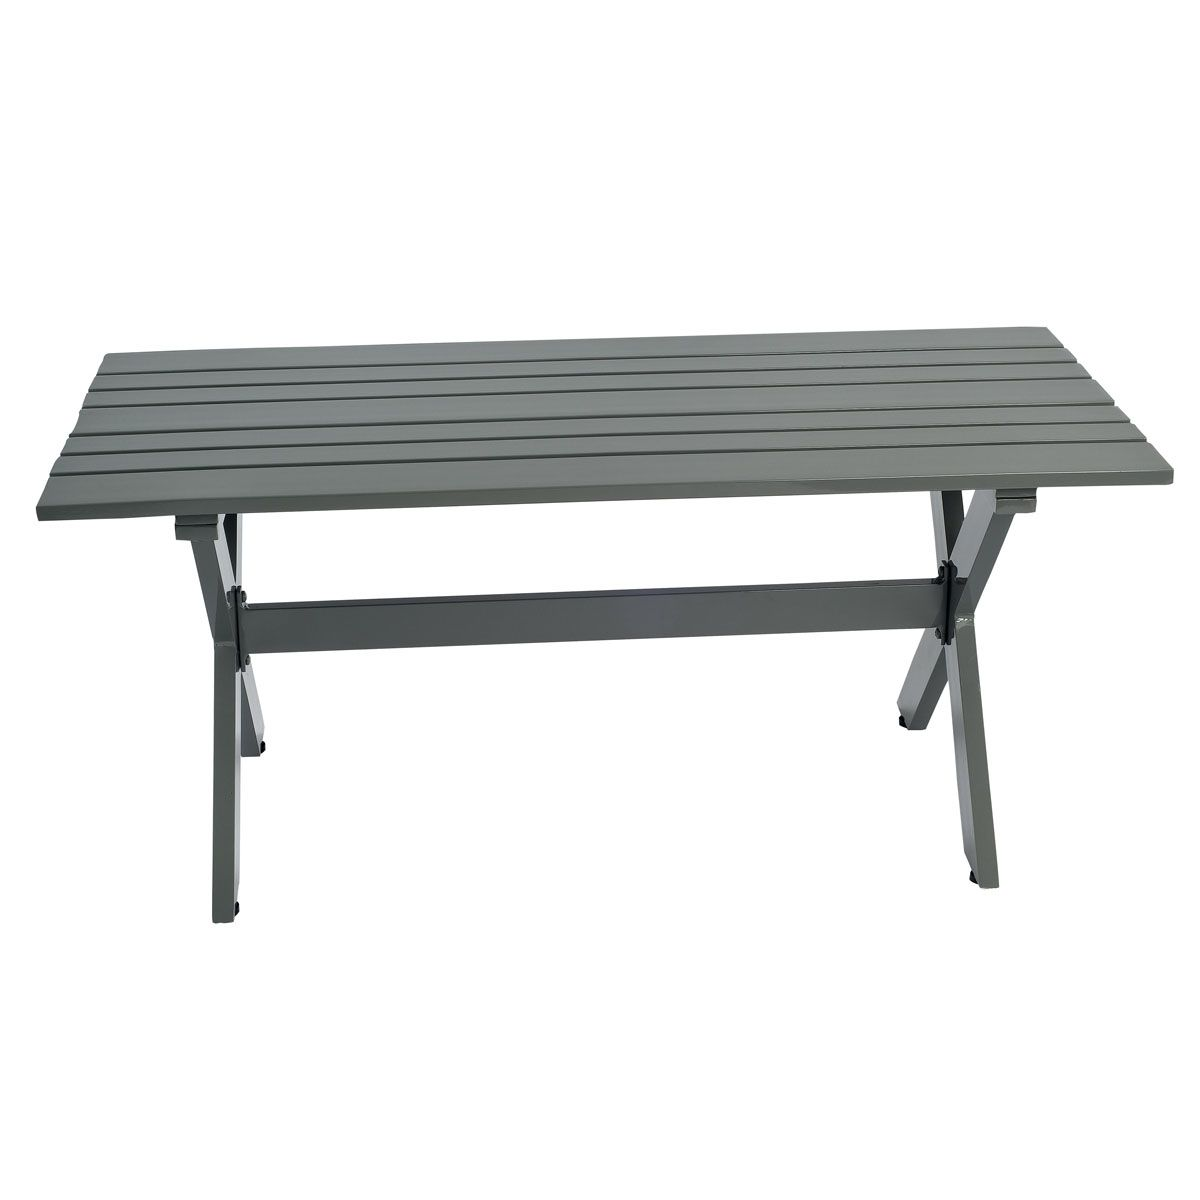 Graphic Outdoor Coffee Table Outdoor Coffee Tables Contemporary